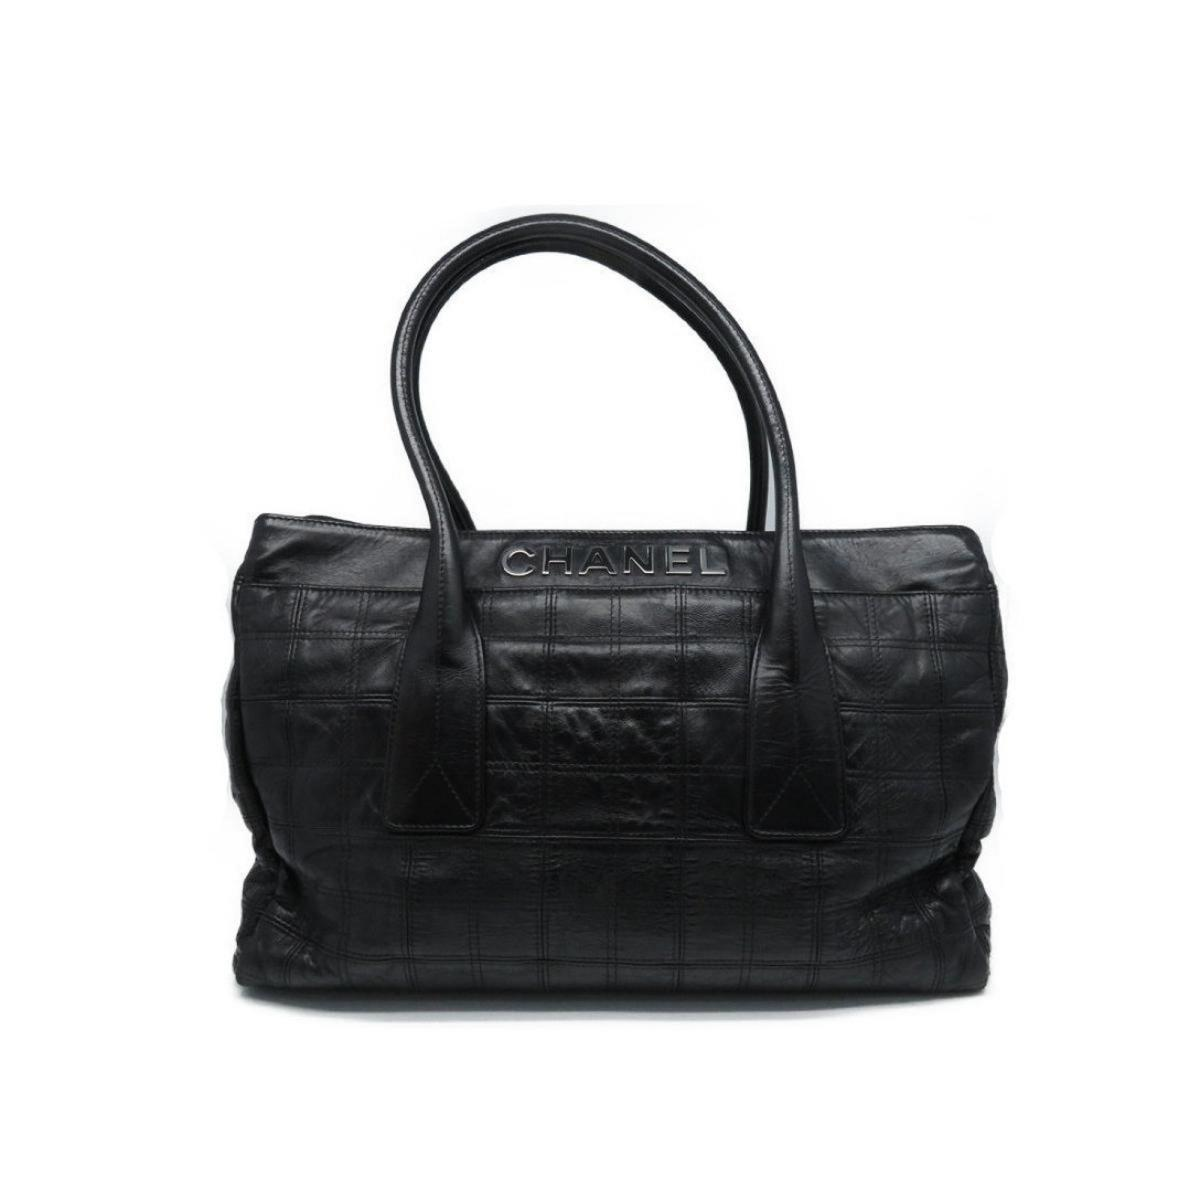 e5c8fb4239abe5 Chanel - Authentic Chocolate Bar Shoulder Tote Bag Leather Black Used  Vintage - Lyst. View fullscreen